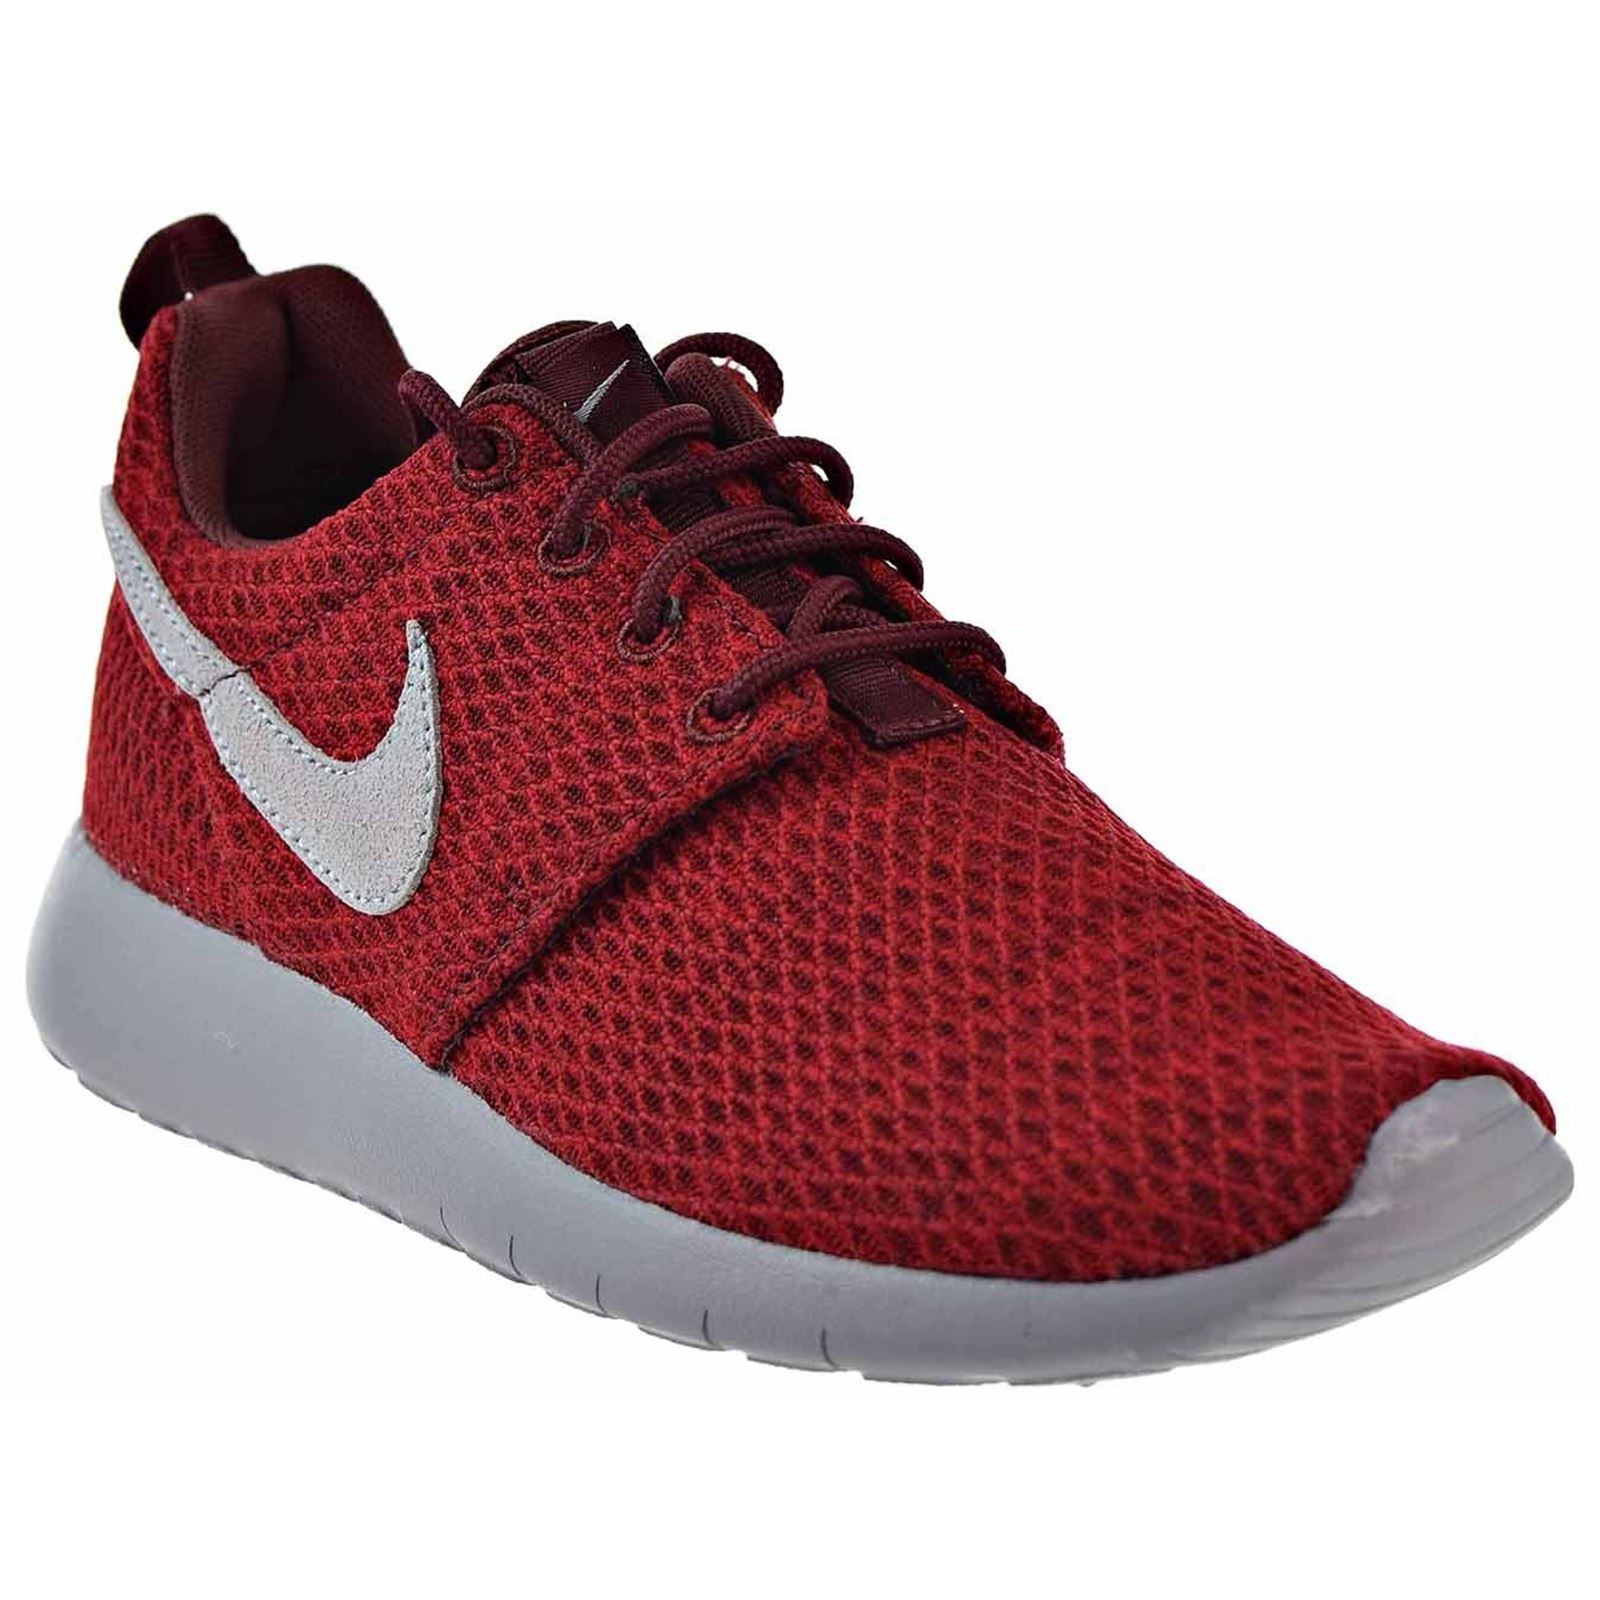 finest selection 718a2 c3c02 ... coupon nike roshe one grade school dark team red grey youth low top  running trainers 874a4